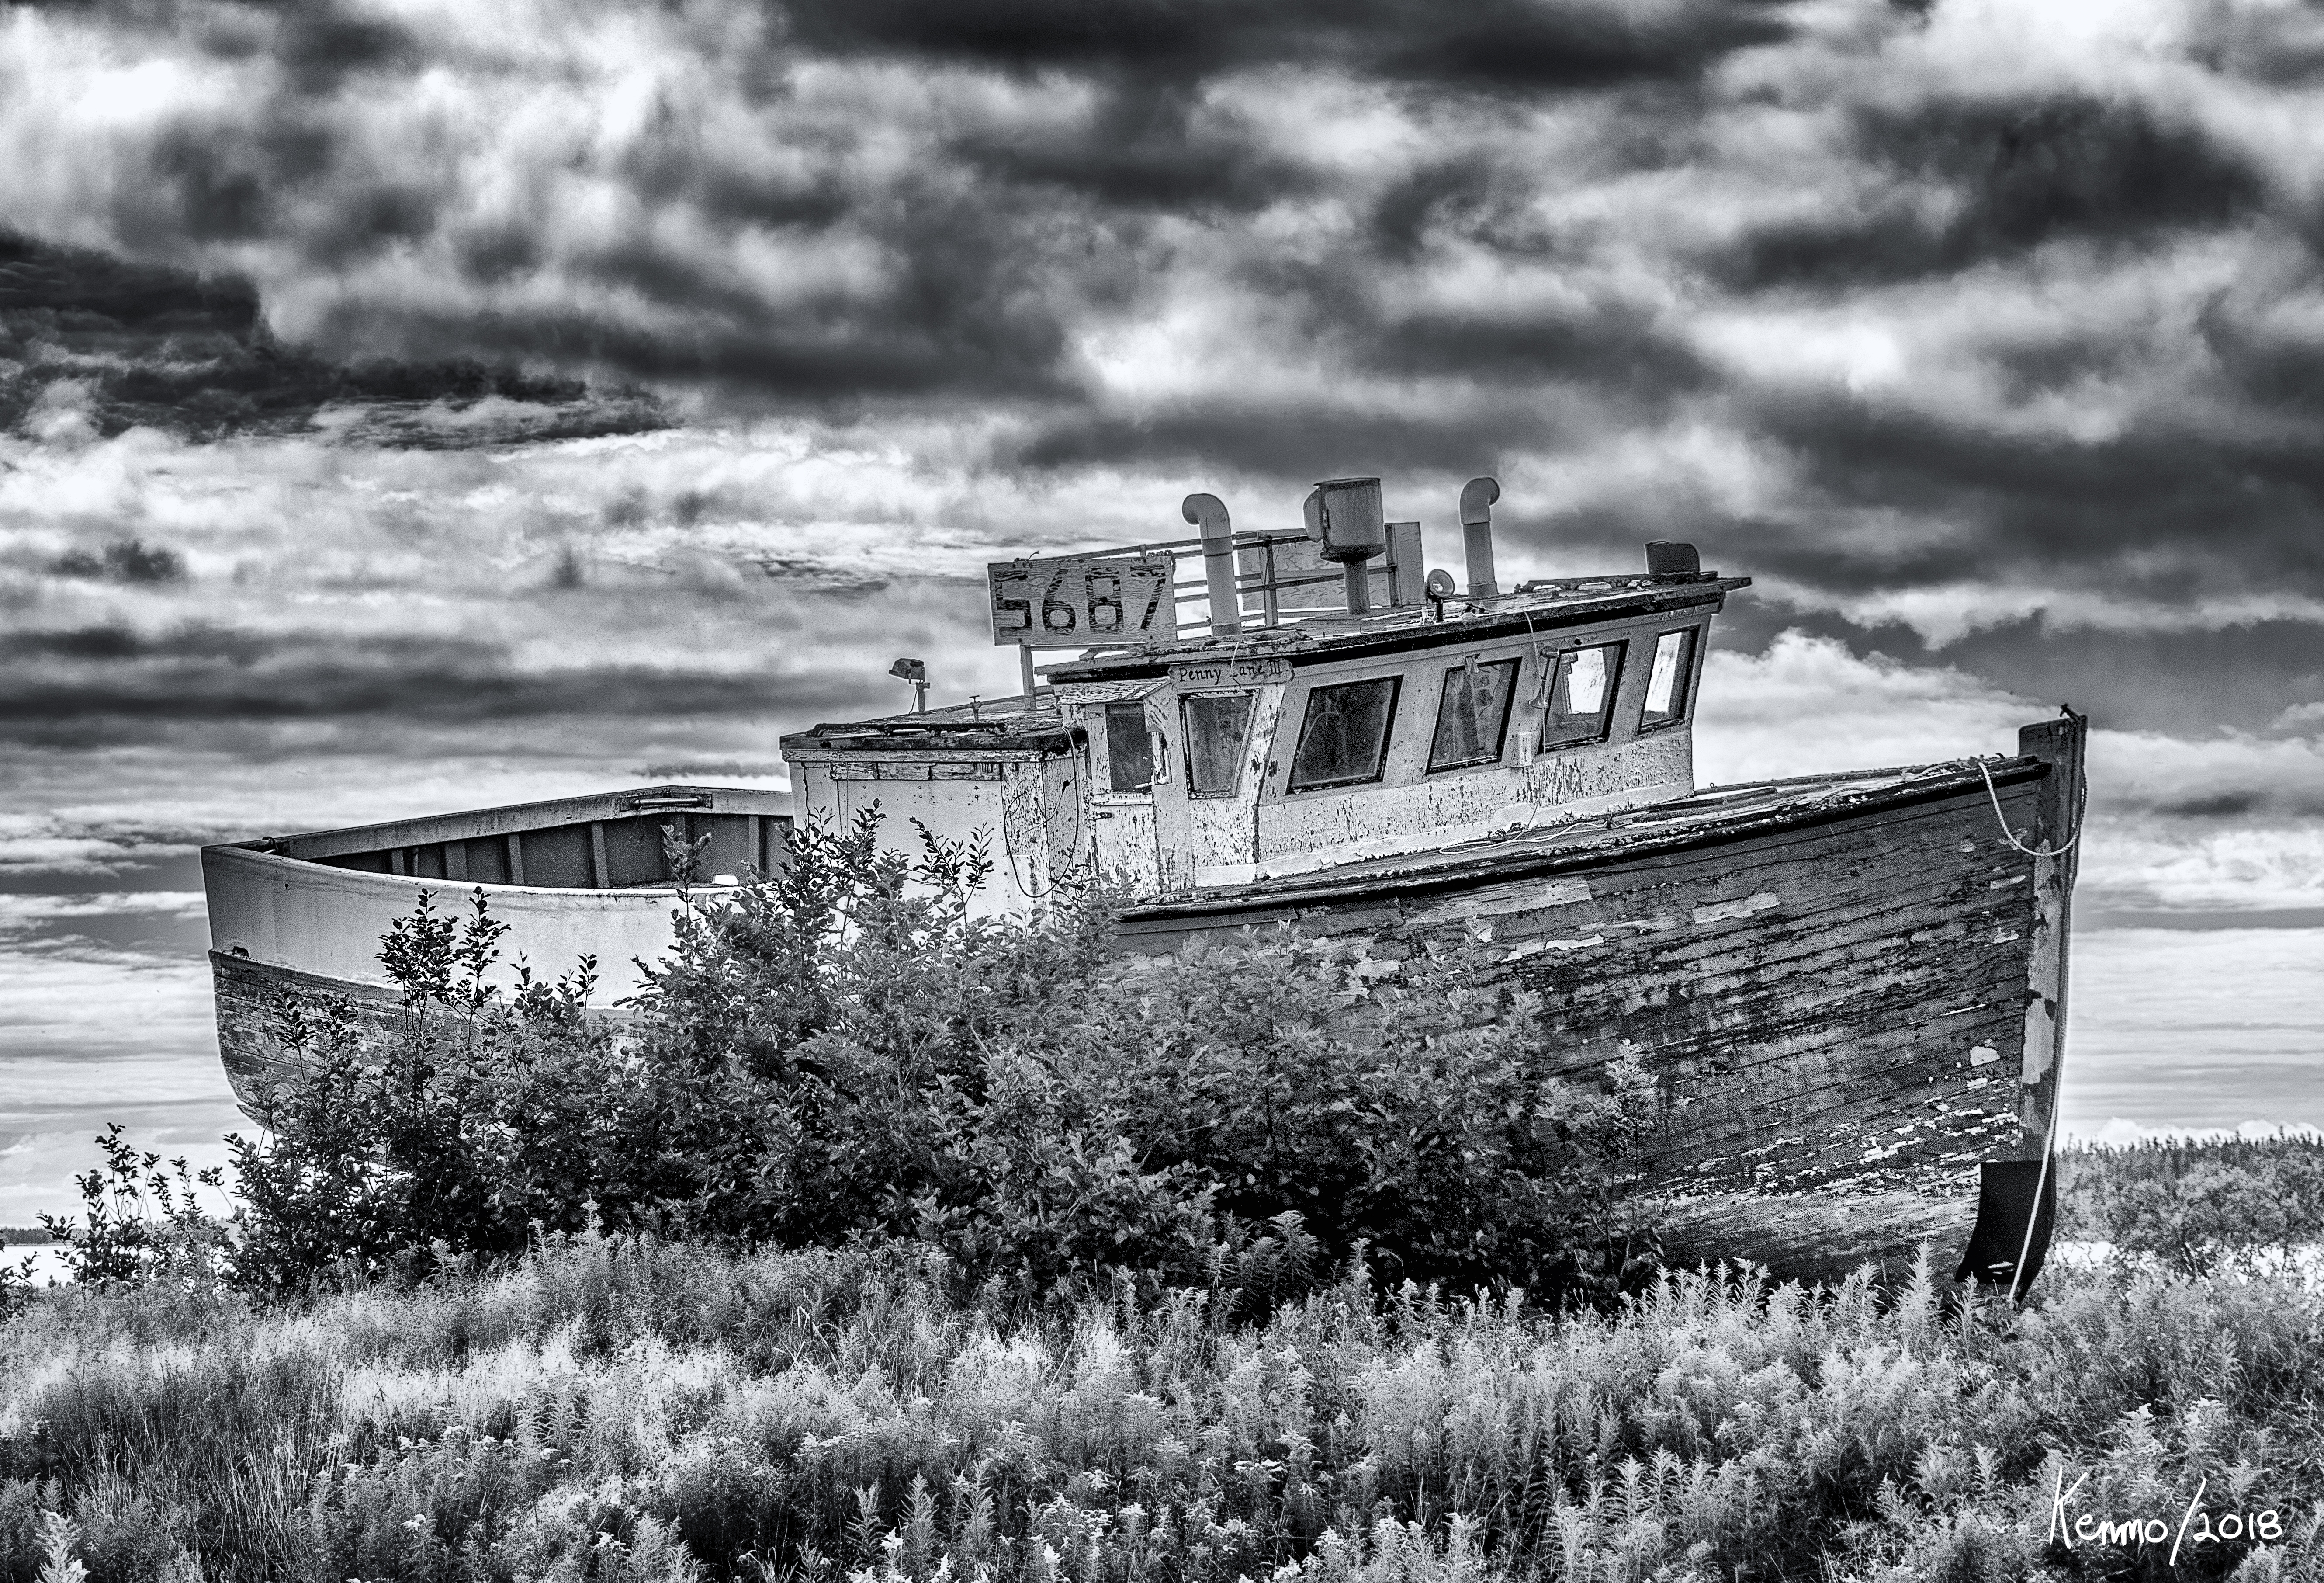 Old Fishing Boat in fishing village of  Marie Joseph, Nova Scotia